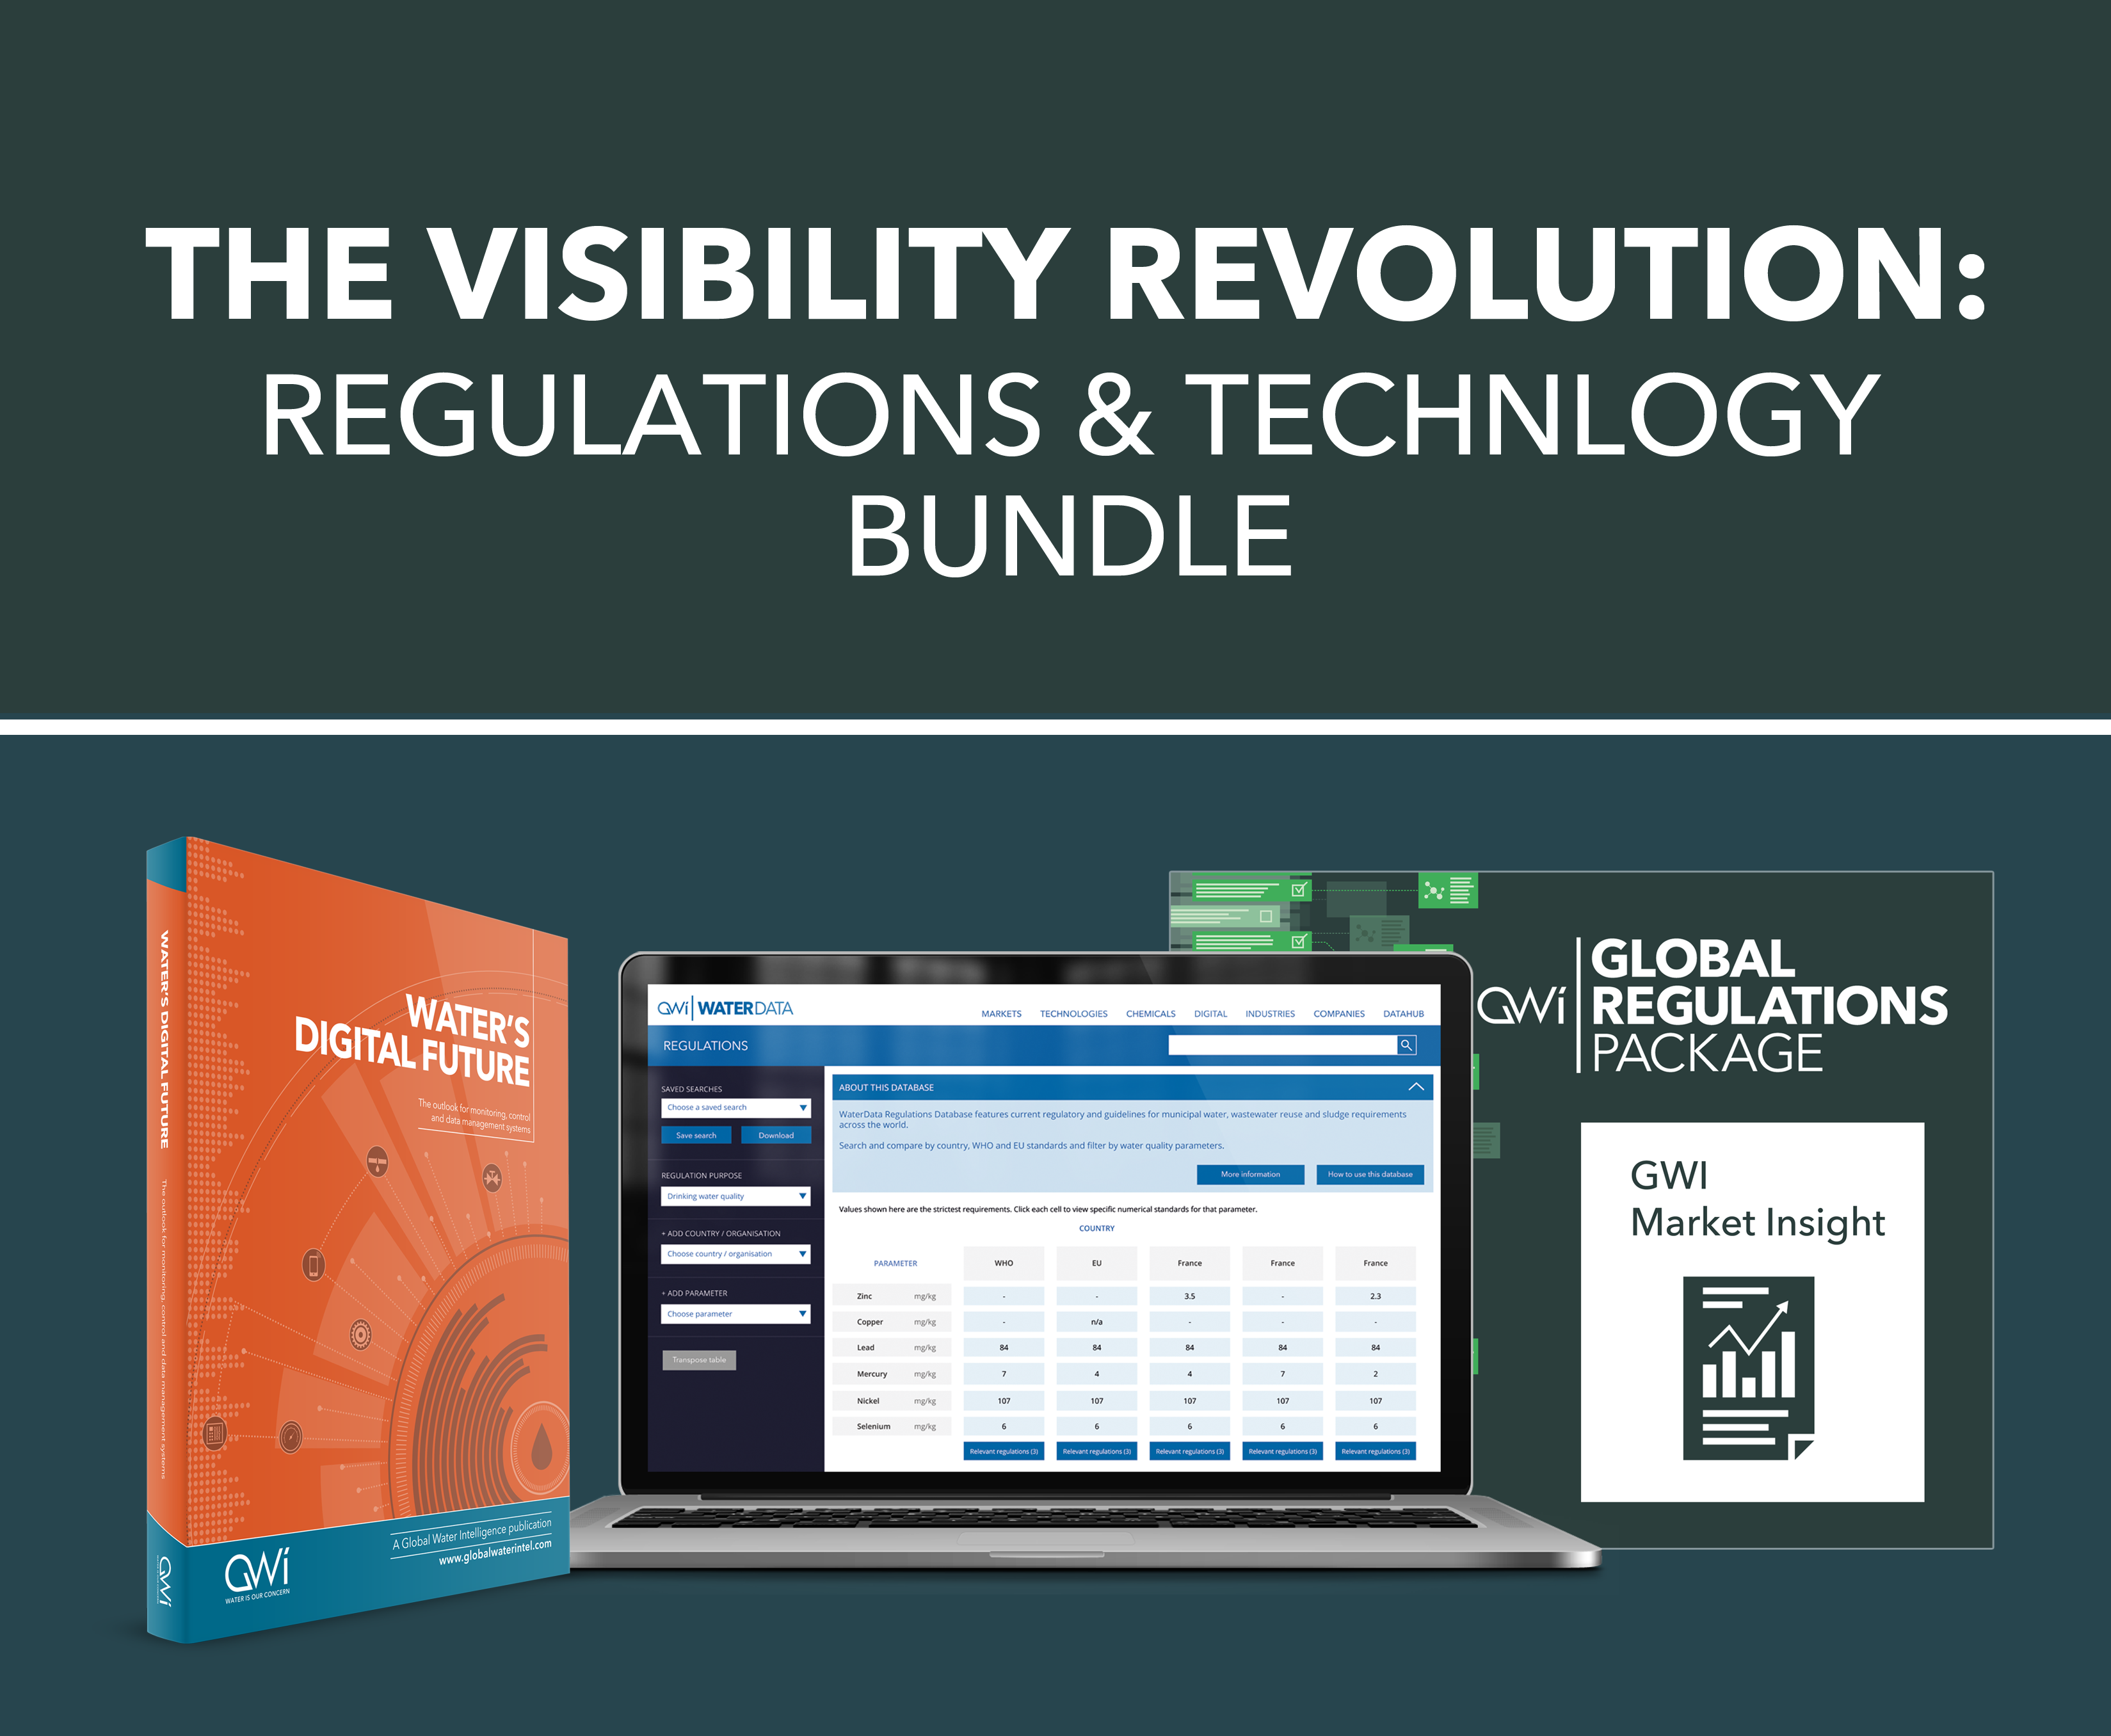 The Visibility Revolution: Regulations and Technology Bundle